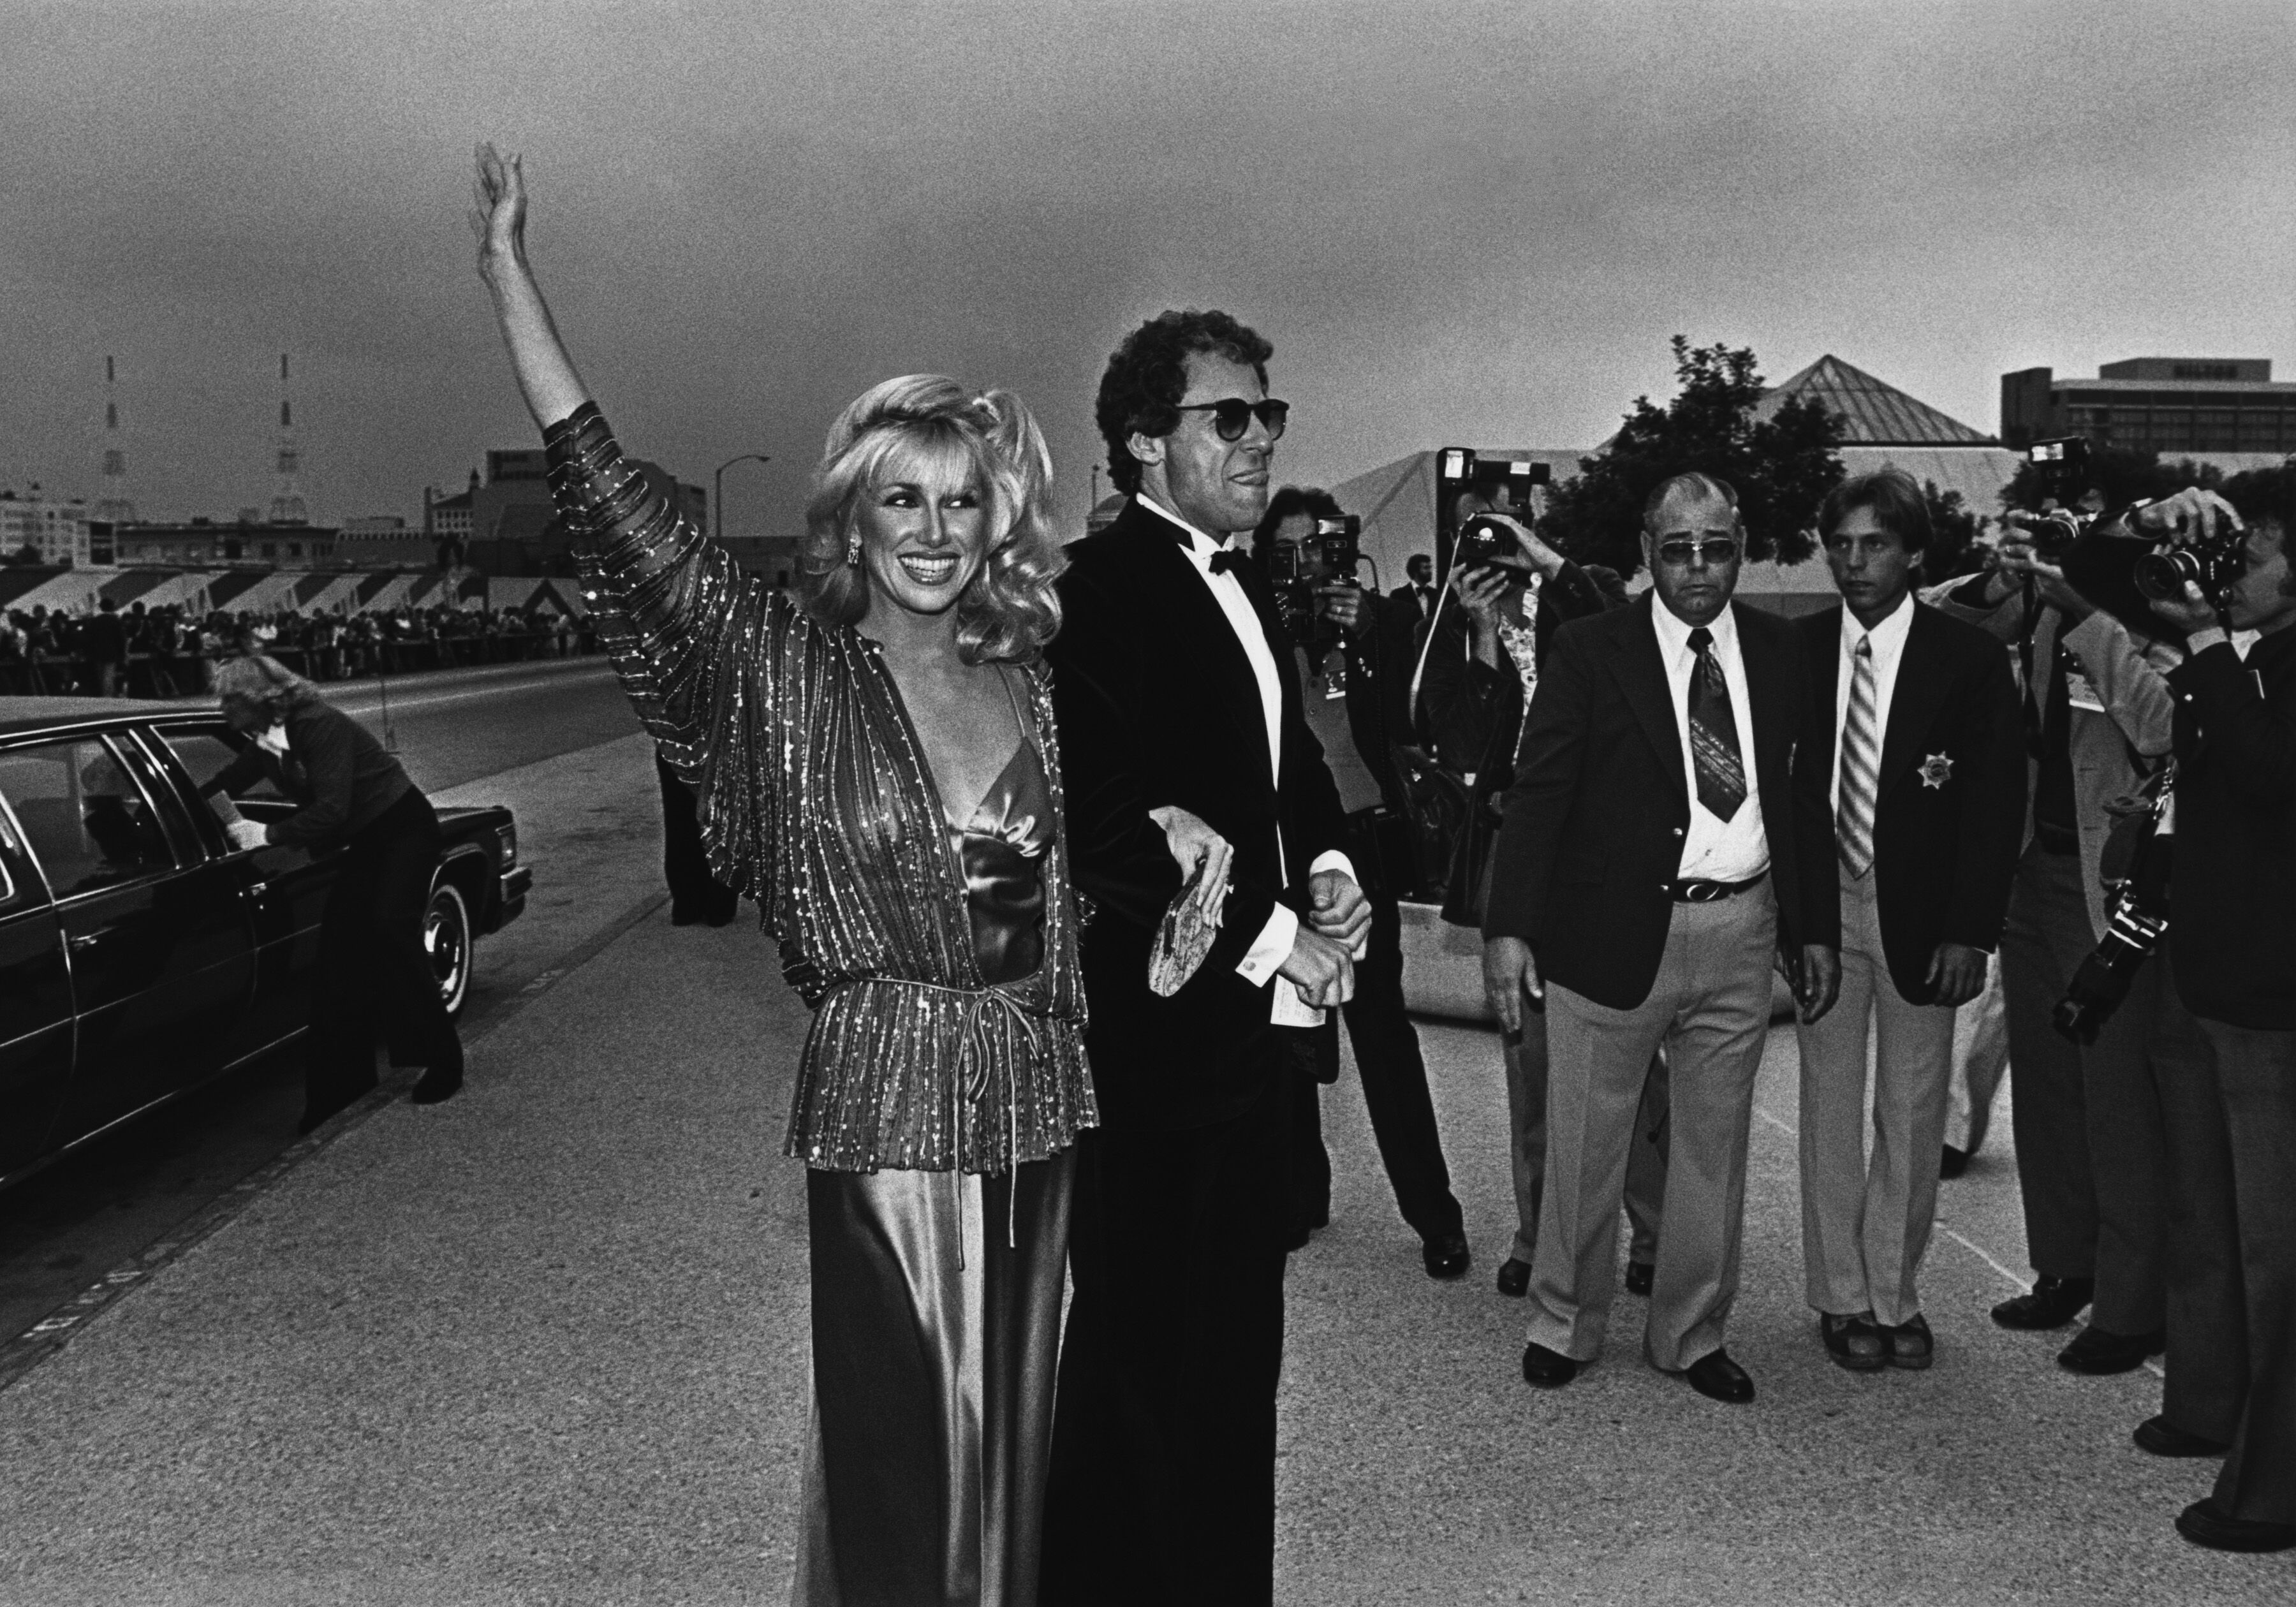 Suzanne Somers and her husband Alan Hamel at the 1978 Emmy Awards in Pasadena, California | Source: Getty Images